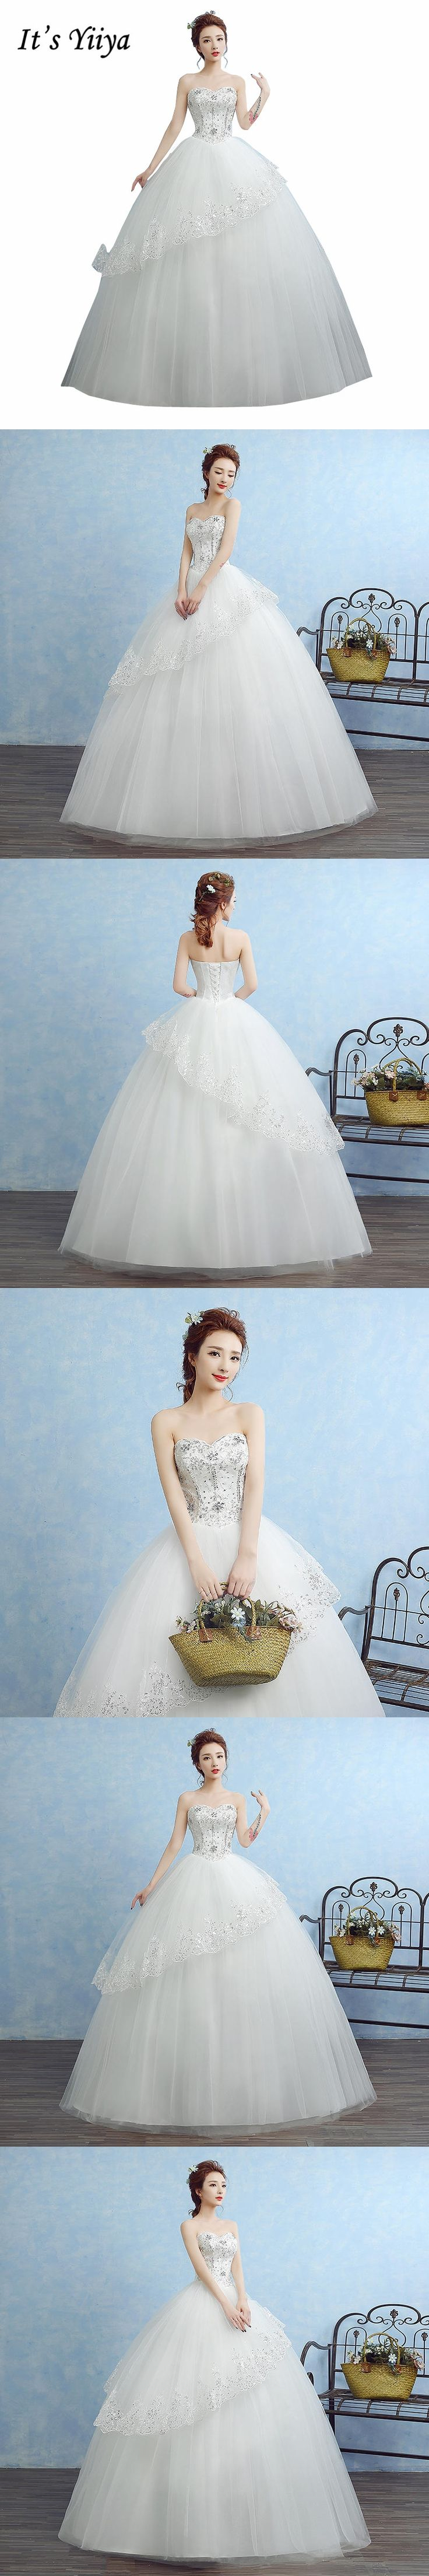 Free Shipping Real Photo Plus size Strapless Bling Sequin Wedding Dresses White Cheap Bride Gowns Frocks Vestidos De Novia XN078